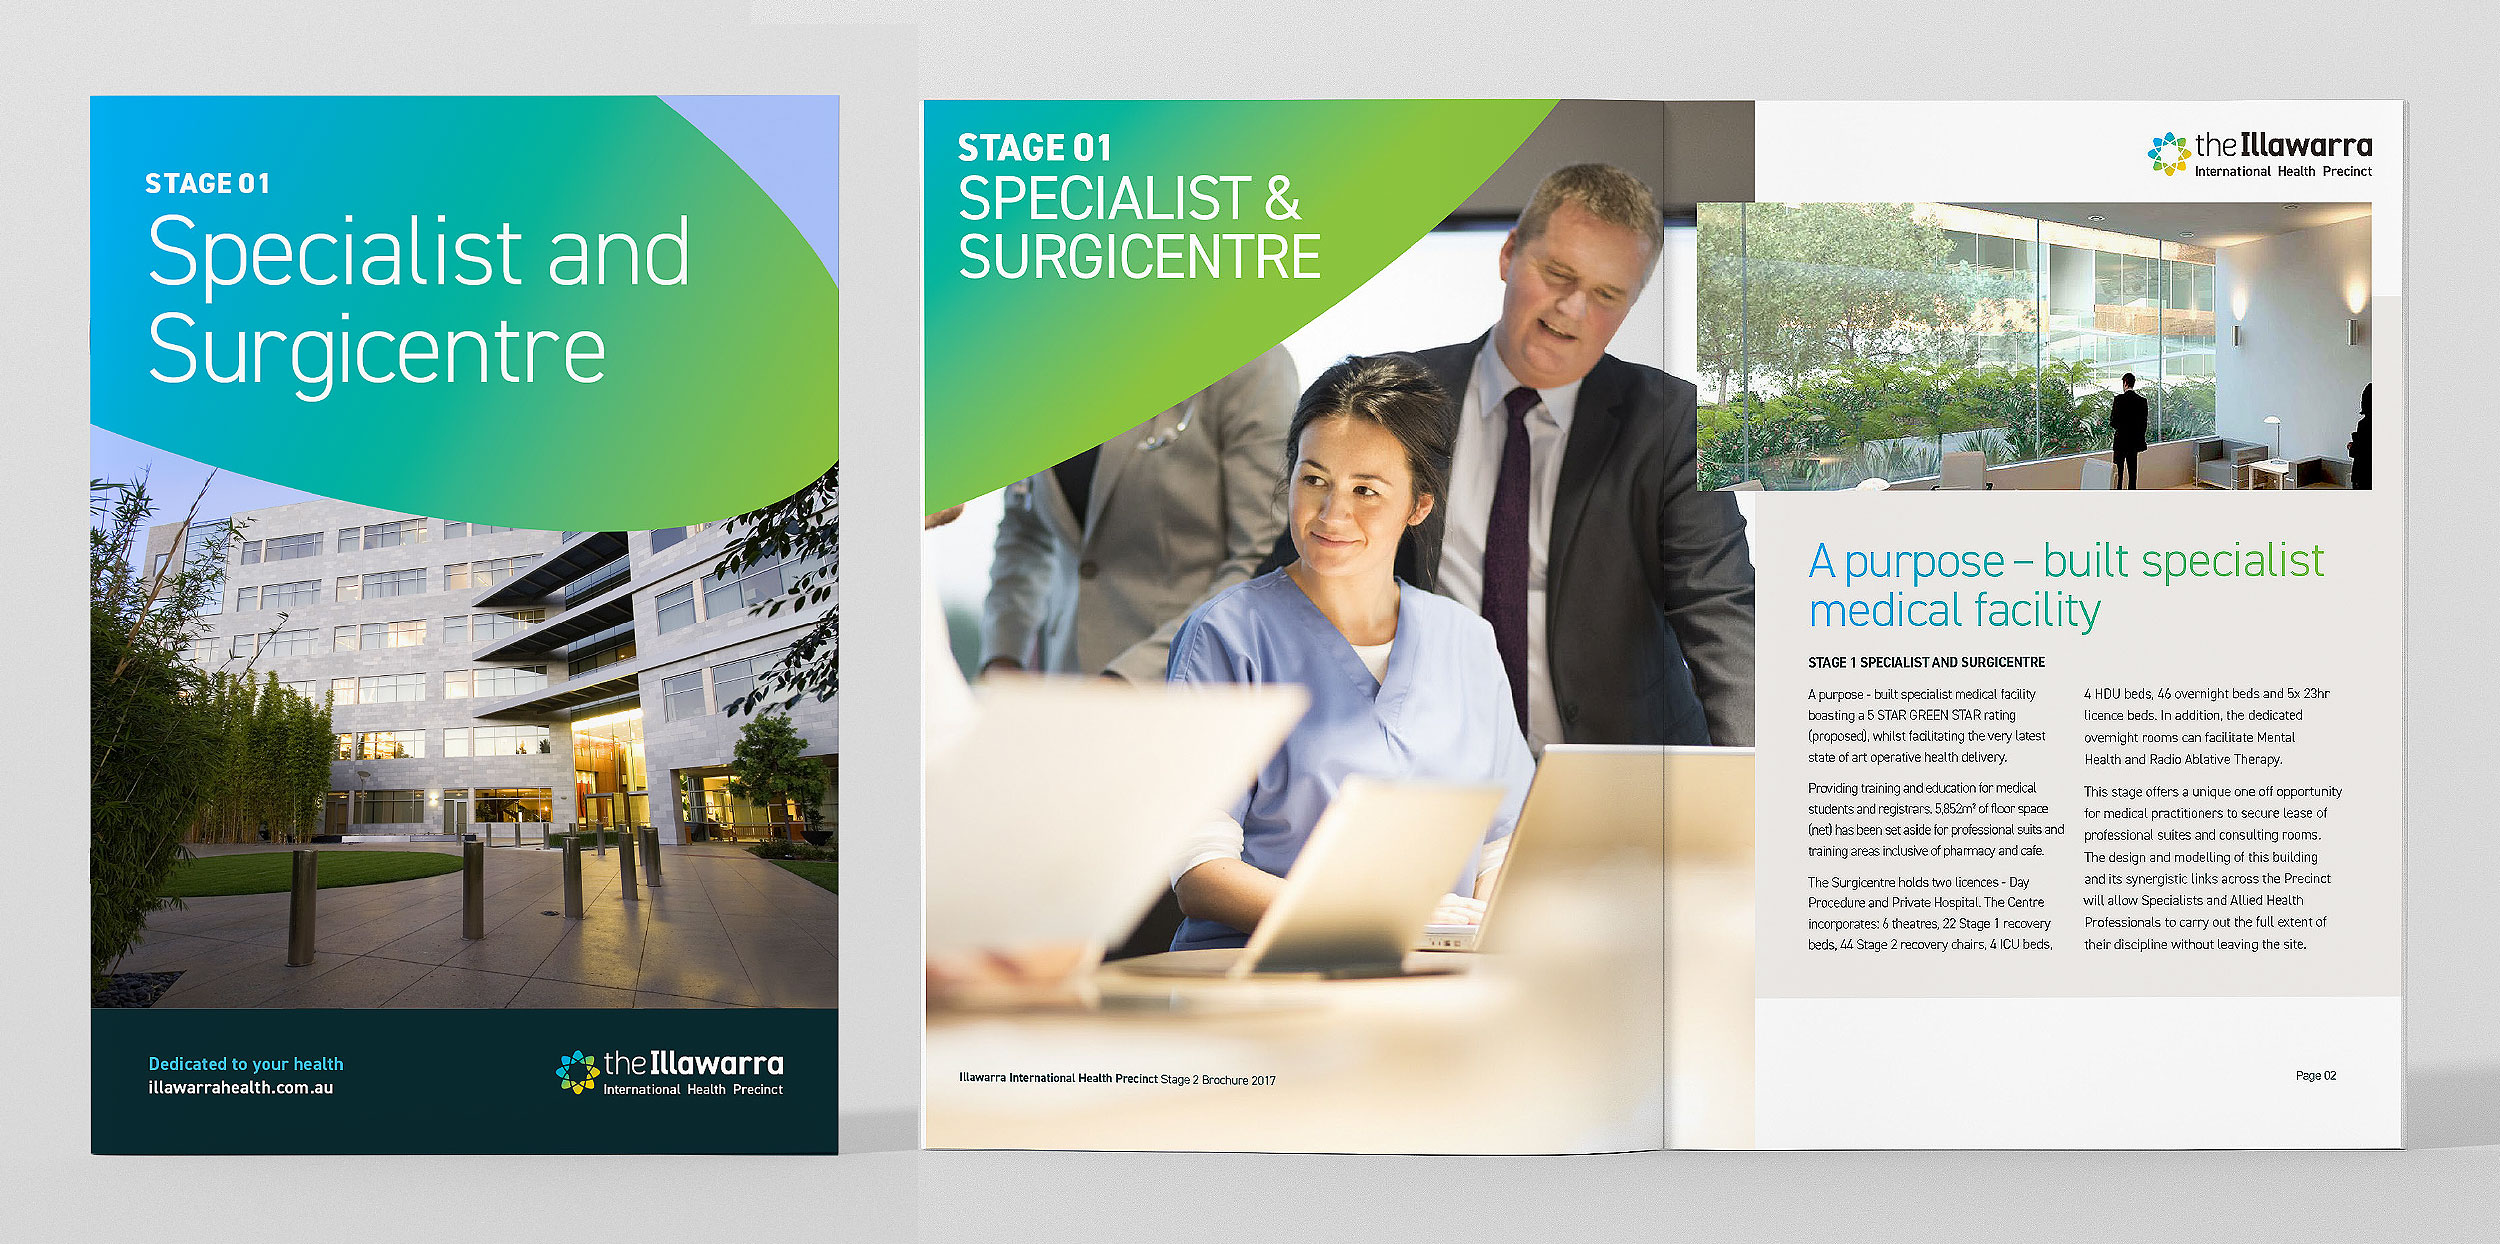 Illawarra-International-Health-Precinct-Hospital-Branding-Handle-Sydney-Branding_8.jpg